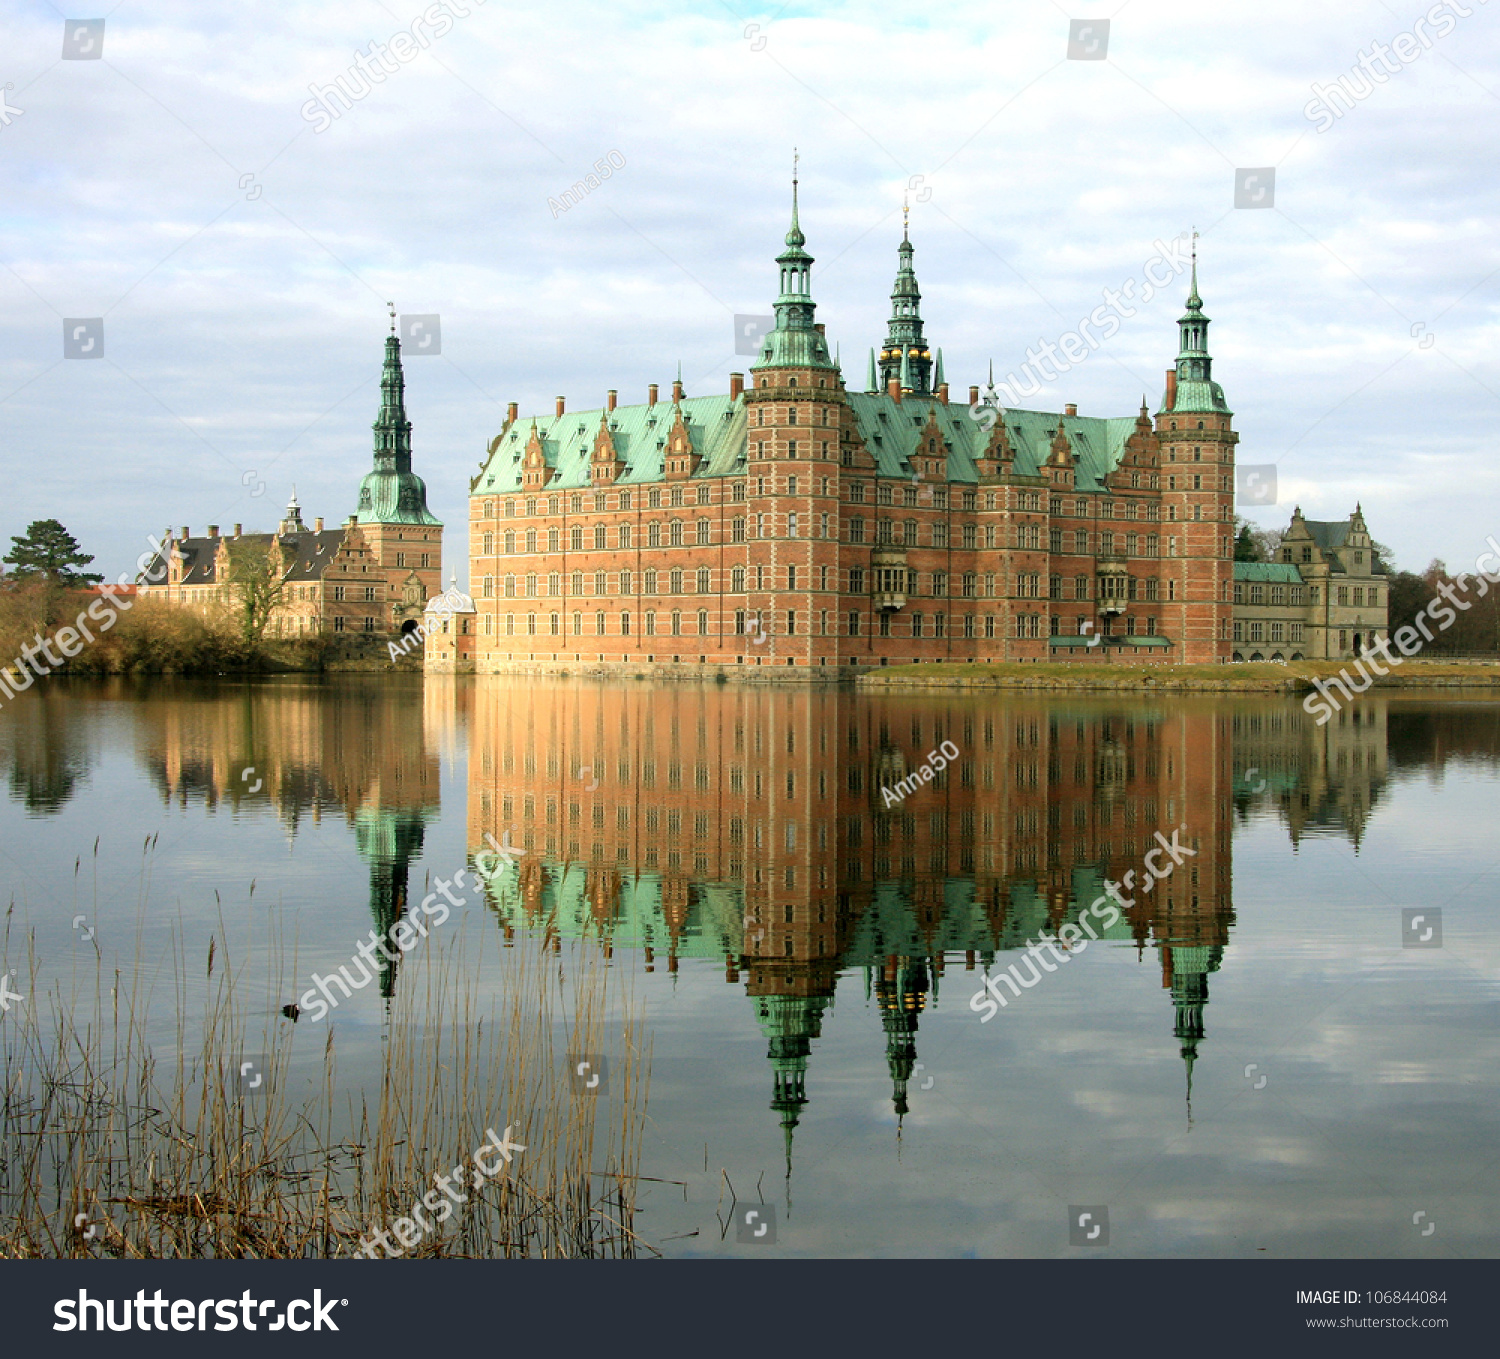 The museum of national history at frederiksborg castle copenhagen - Frederiksborg Castle It Was Built As A Royal Residence For King Christian Iv And